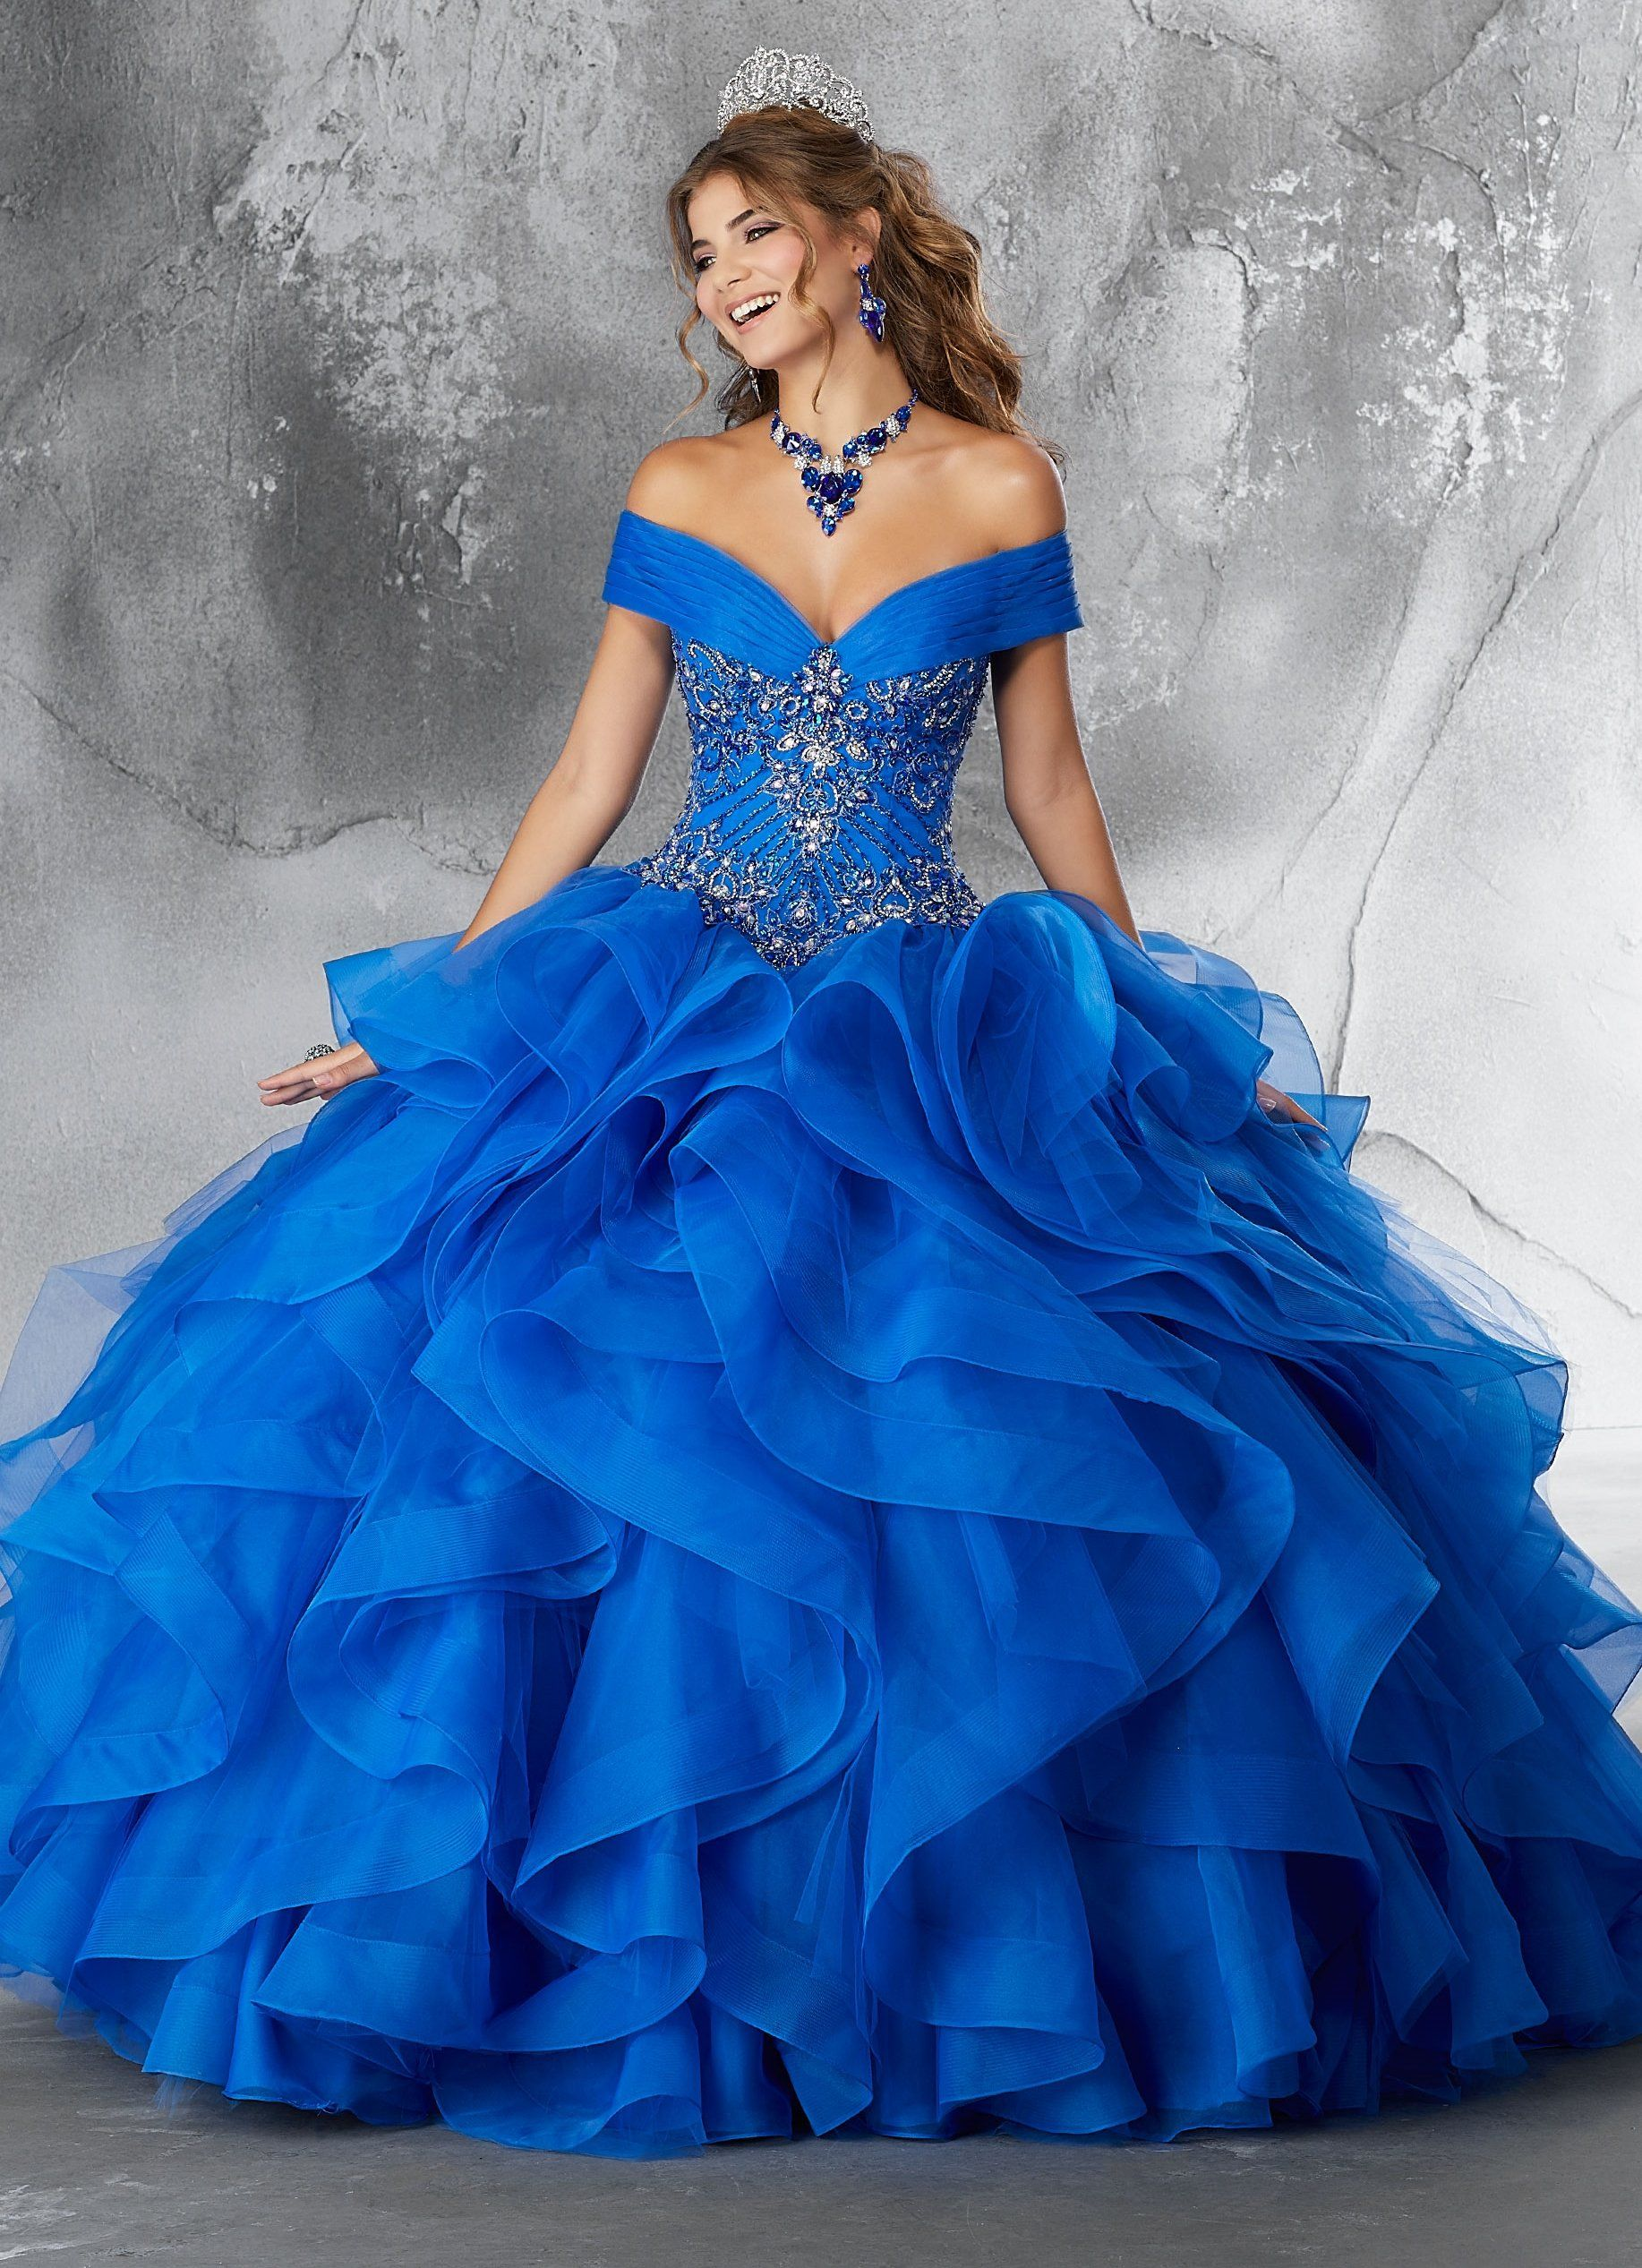 875bba4f633 Off Shoulder Ruffled Quinceanera Dress by Mori Lee Vizcaya 89188 in ...